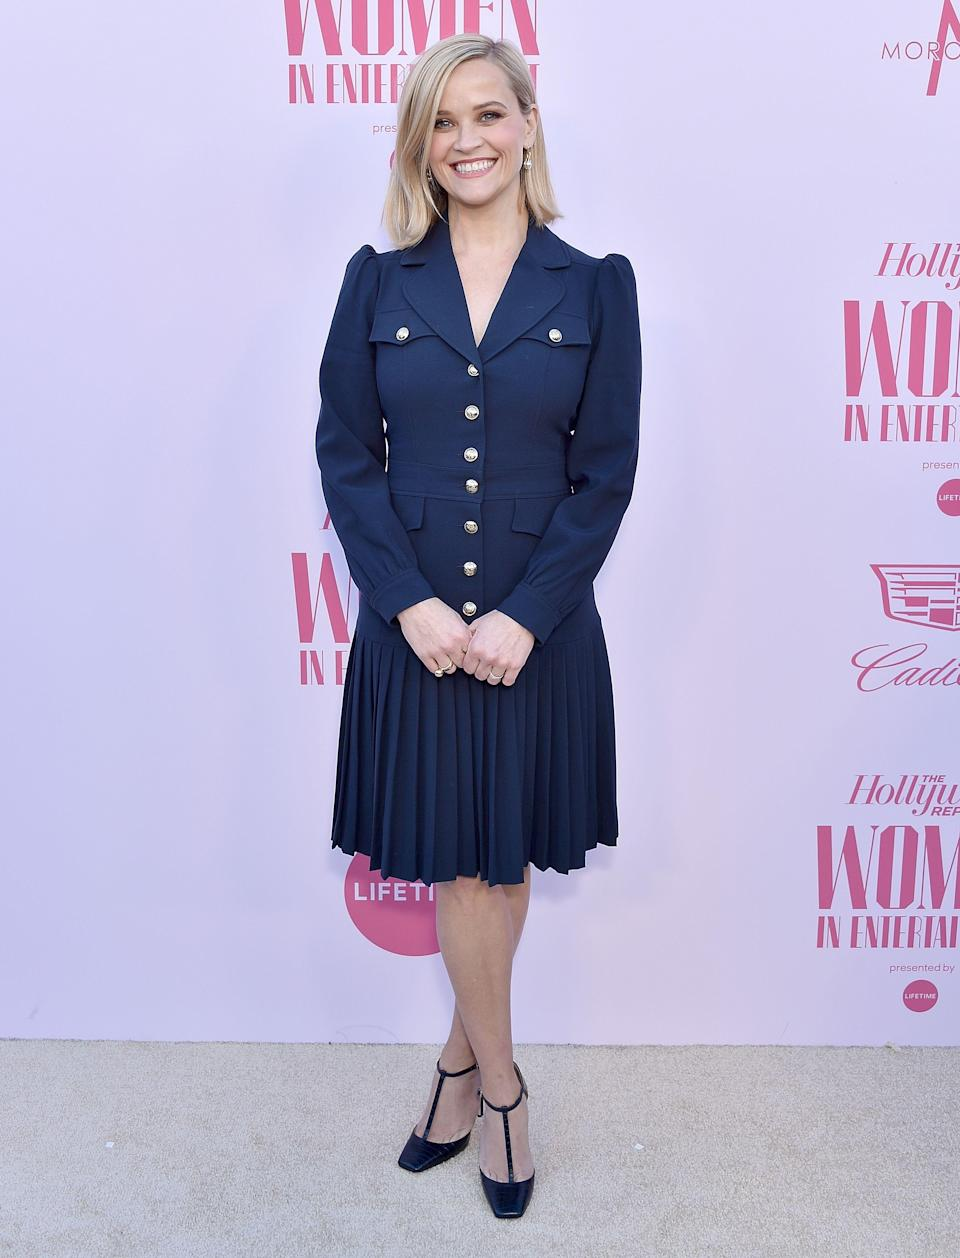 Reese Witherspoon stands on Women in Enterprise carpet wearing a professional navy blue dress